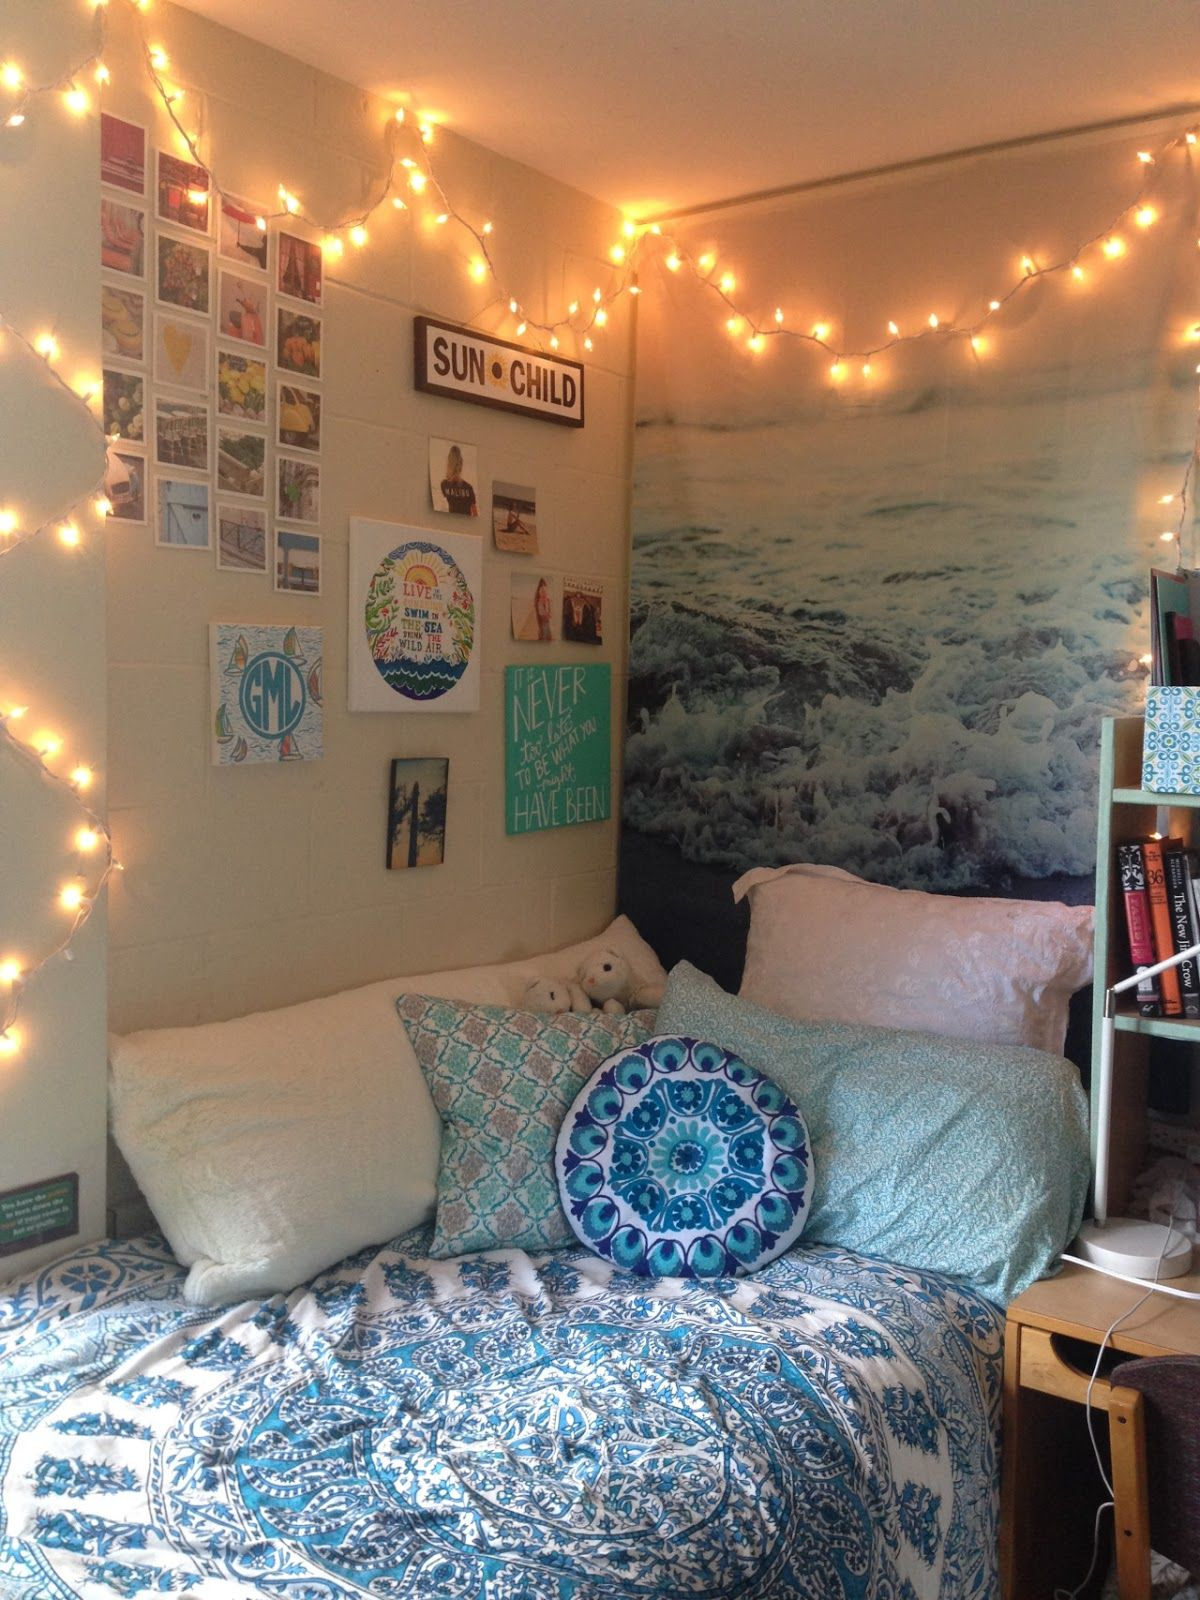 Good 5 Things To Make Your Room Feel Cozy Part 25